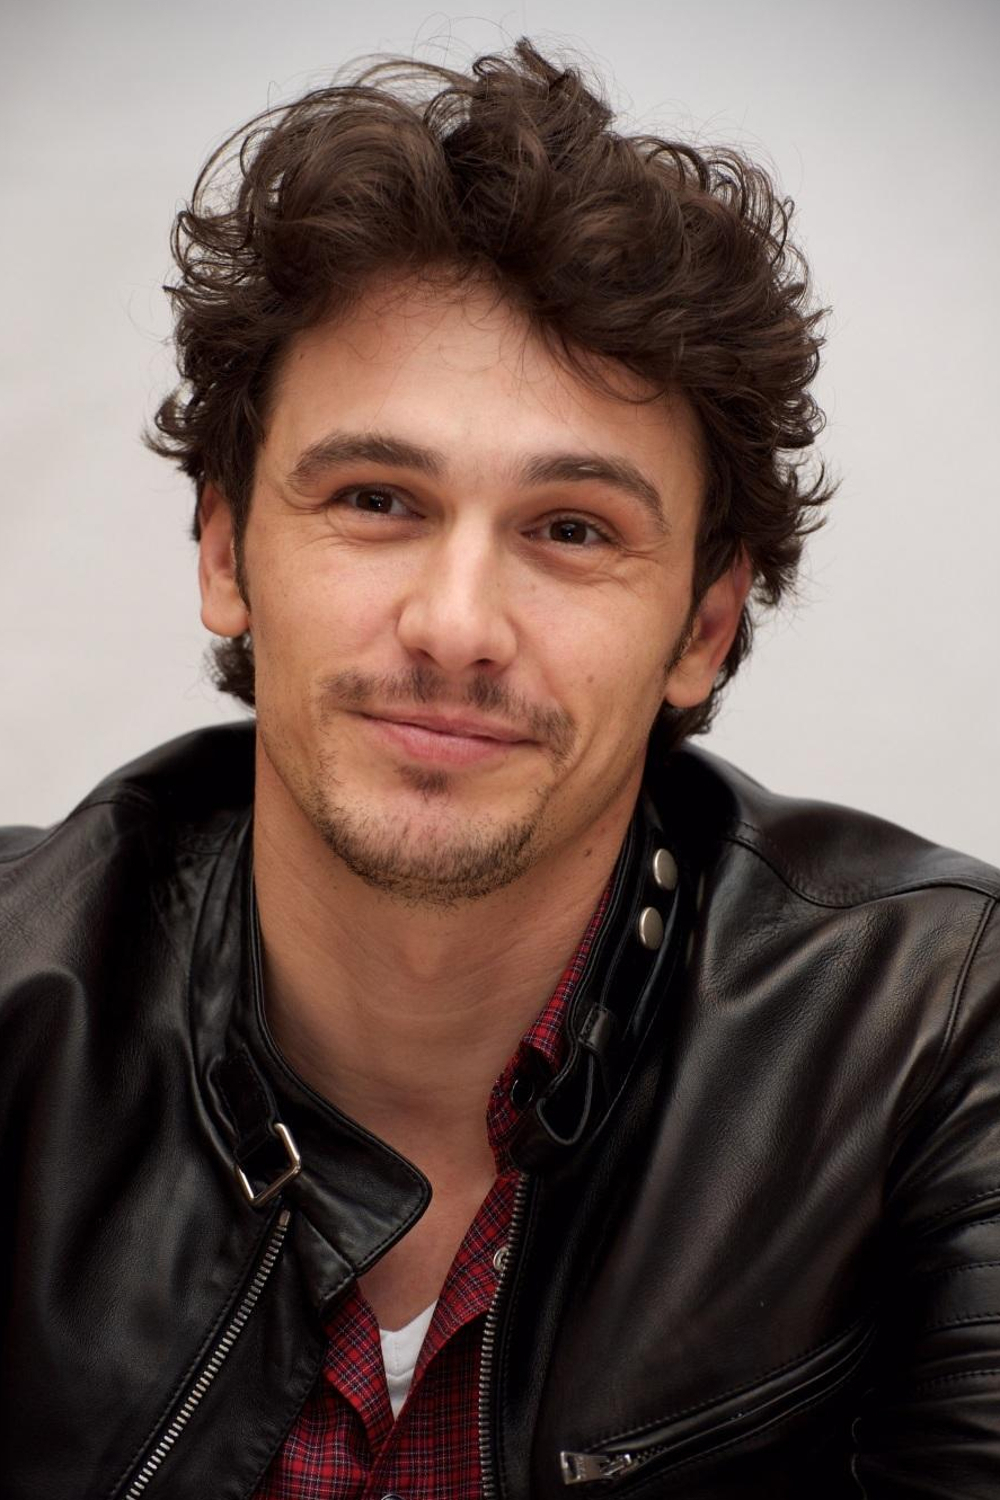 James Franco Height And Weight Measurements